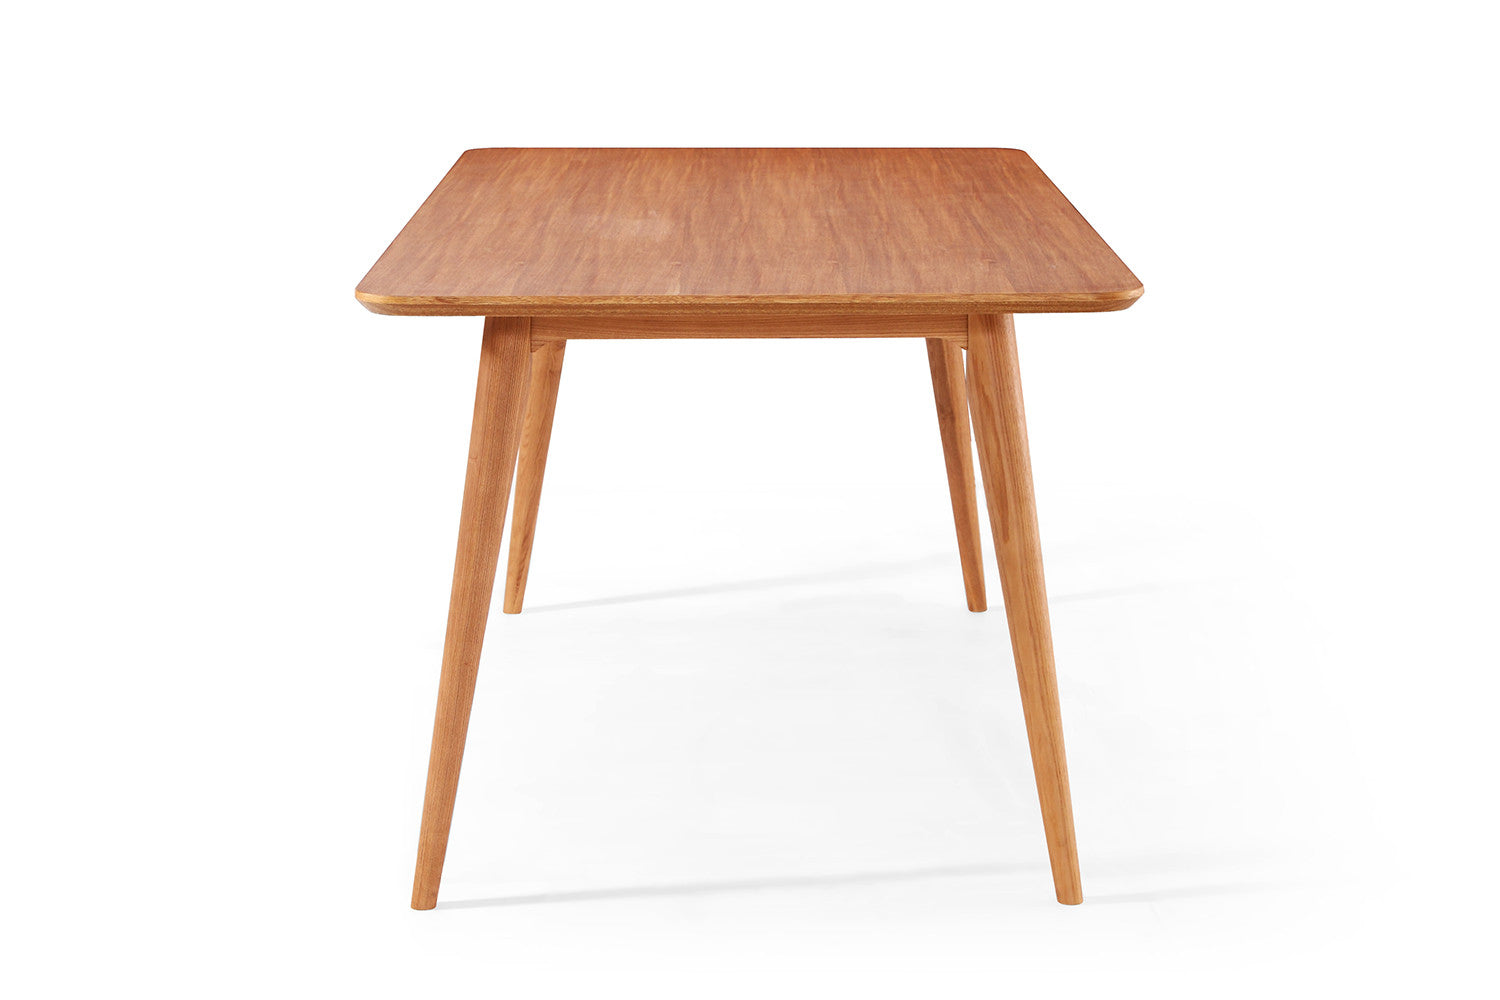 Table de salle manger design en bois julia dewarens for Table salle a manger retractable